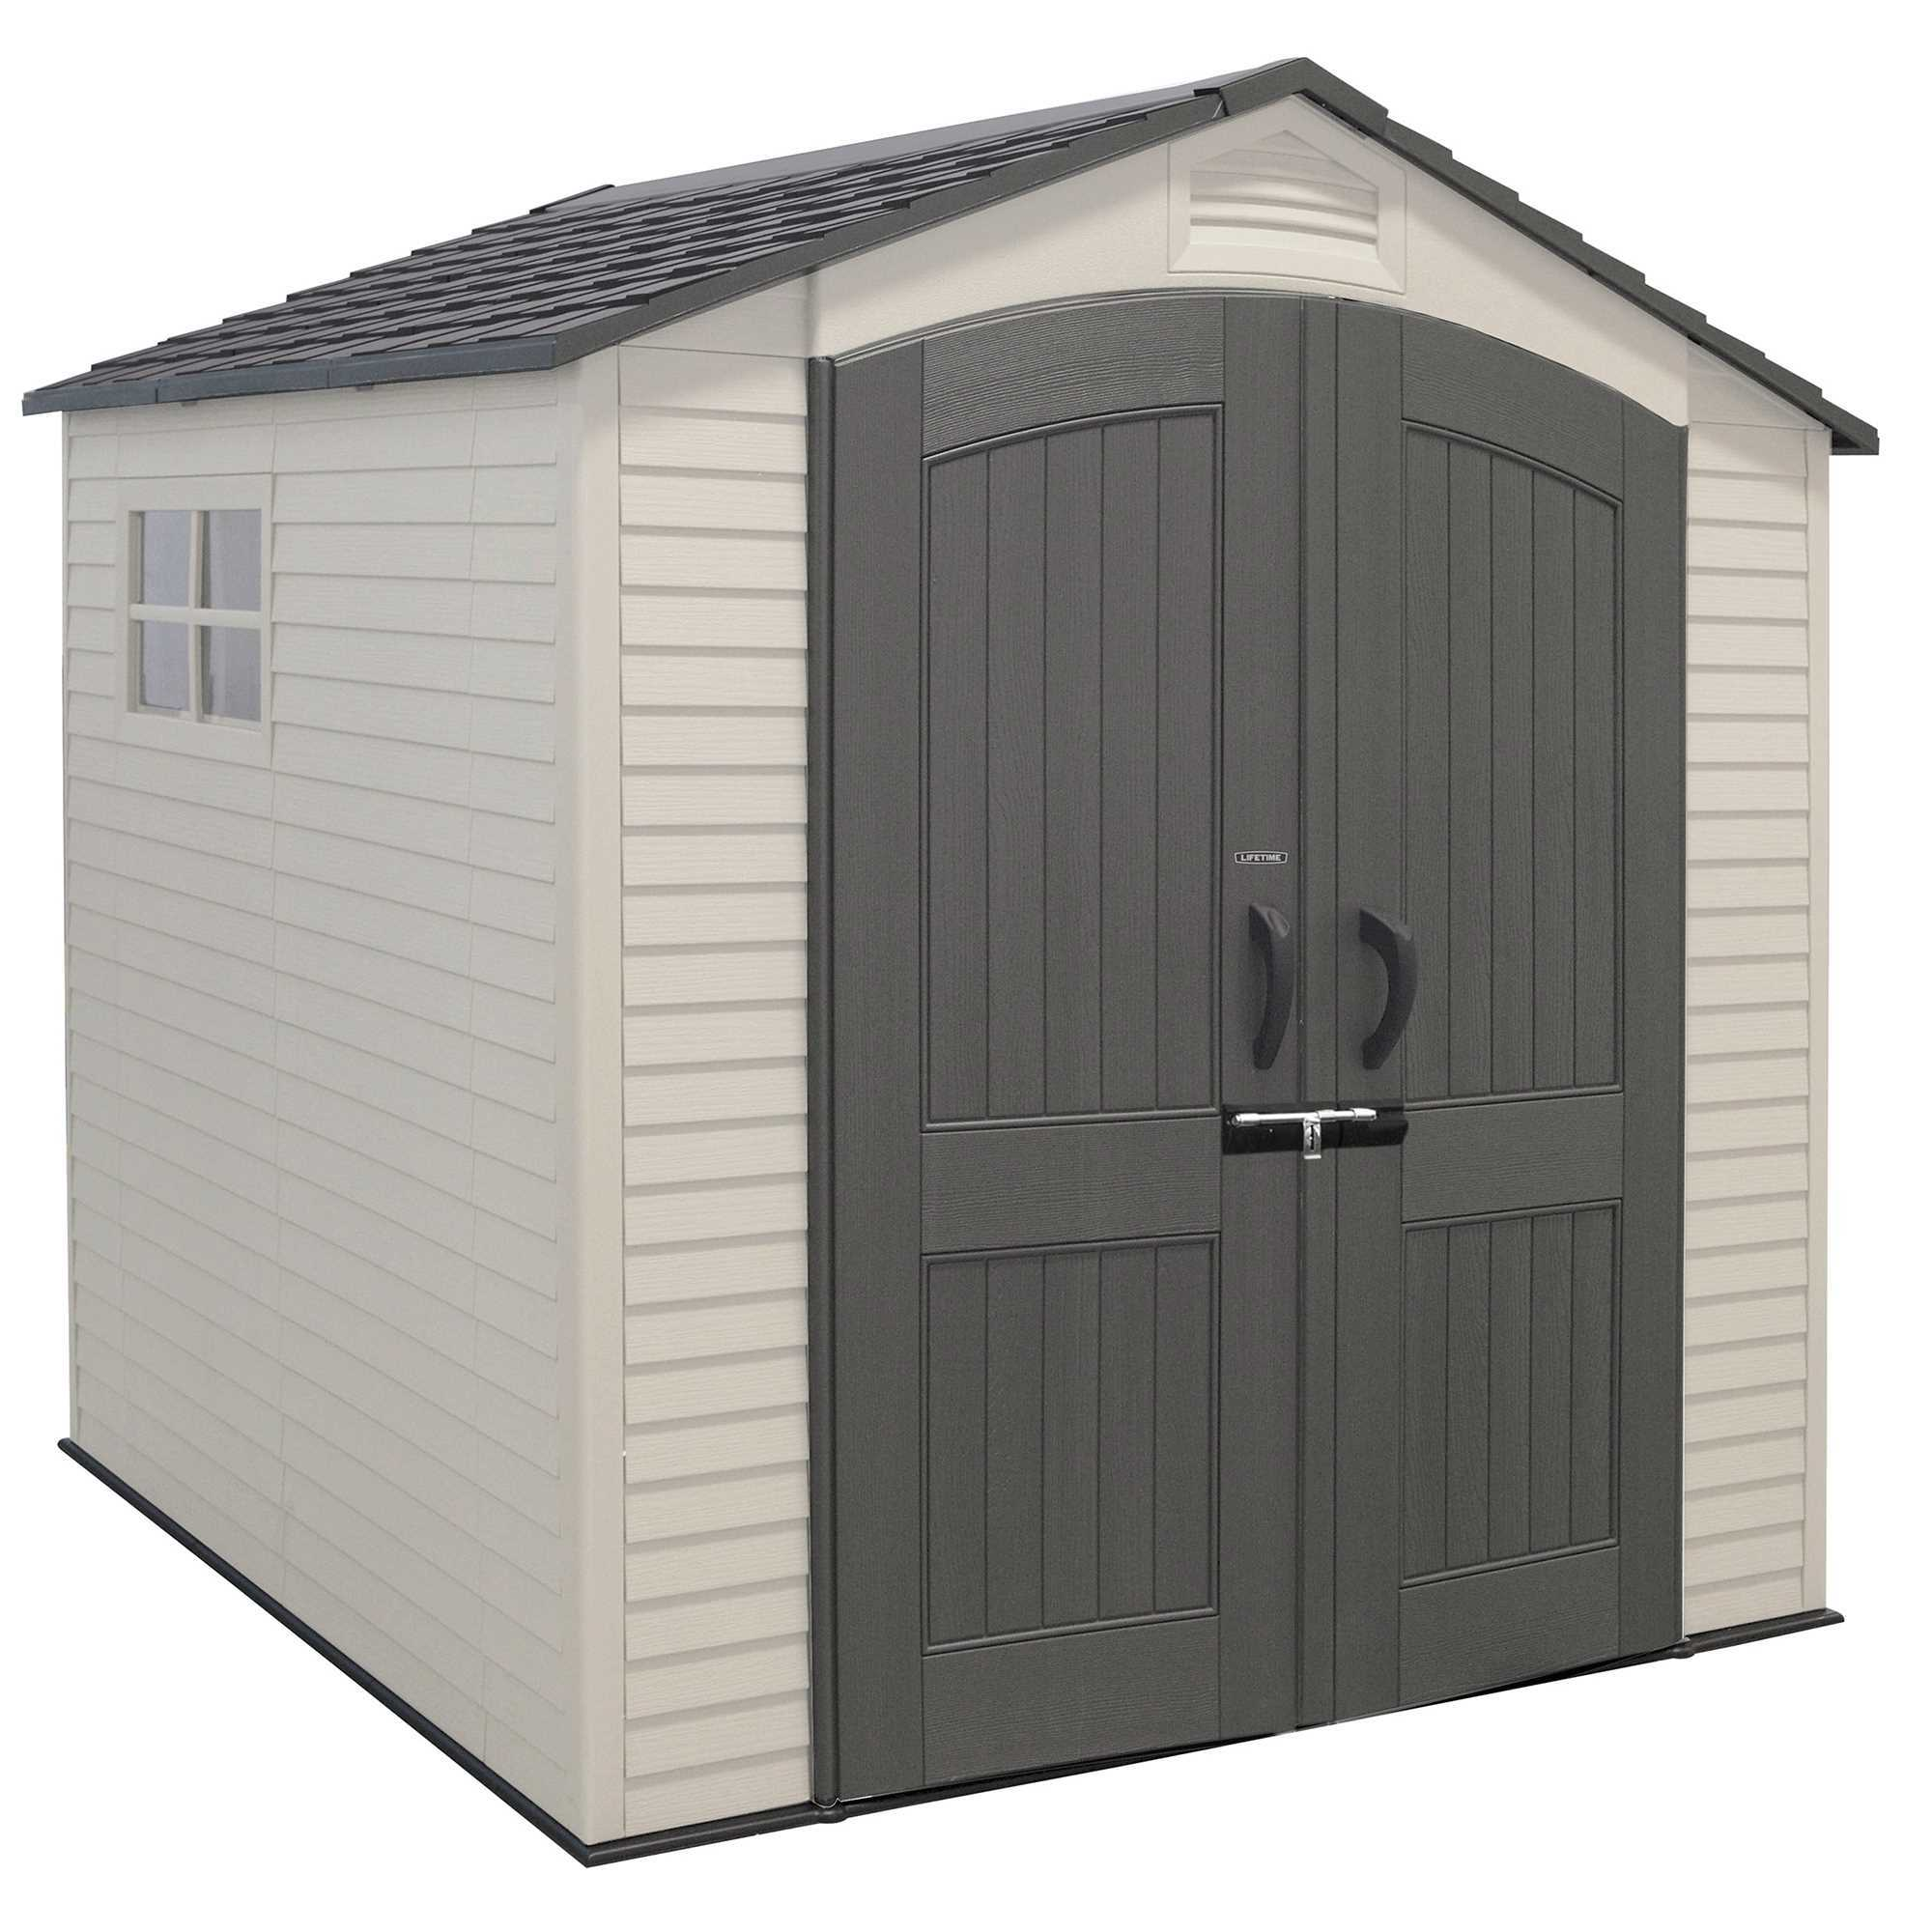 7' x 7' Outdoor Storage Shed (2 windows)